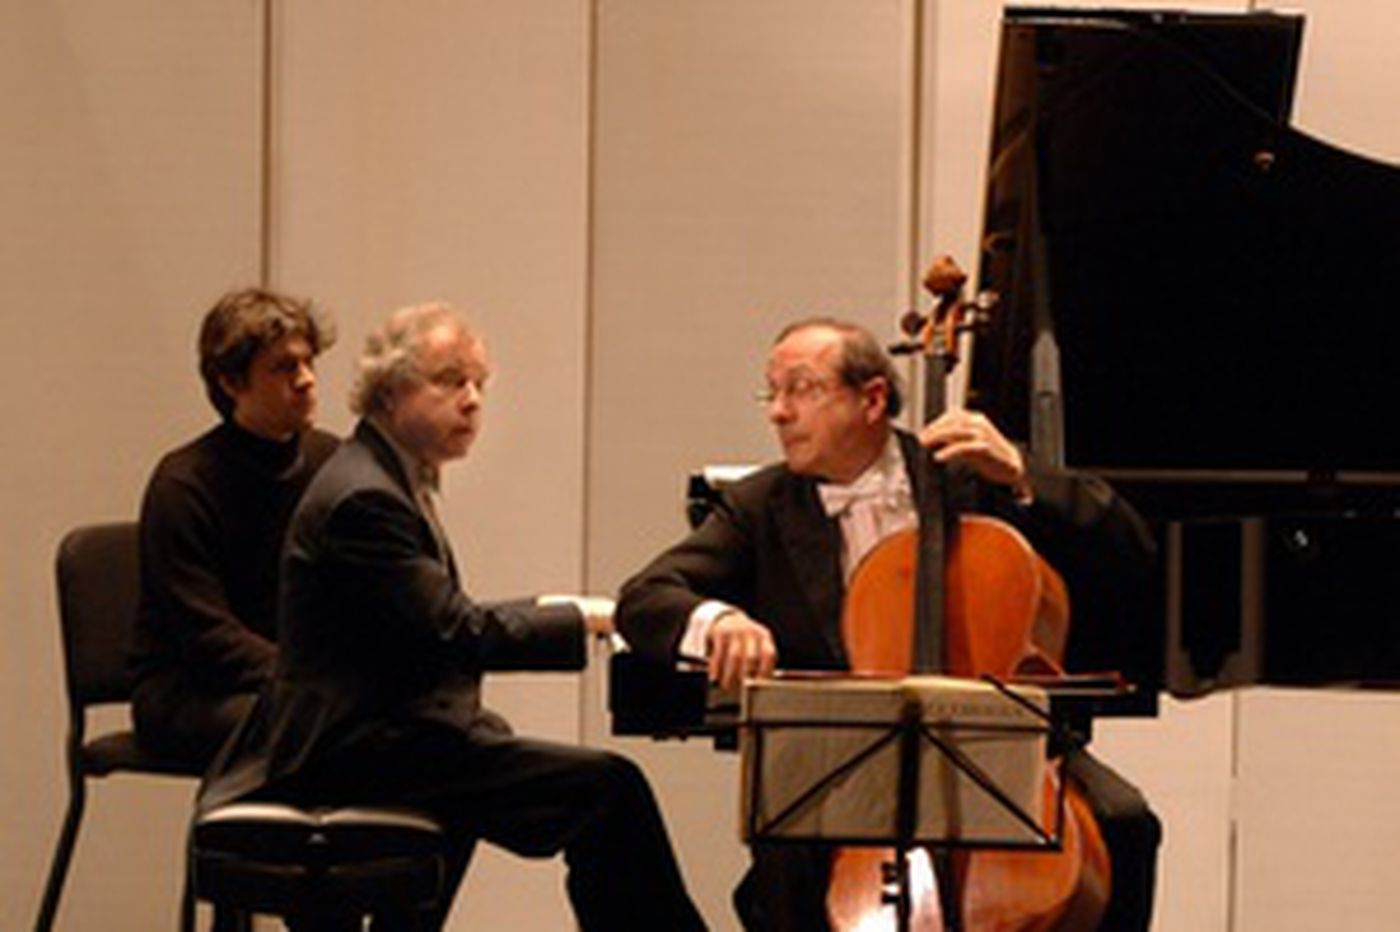 Pianist Schiff, cellist Perenyi in a matchless concert